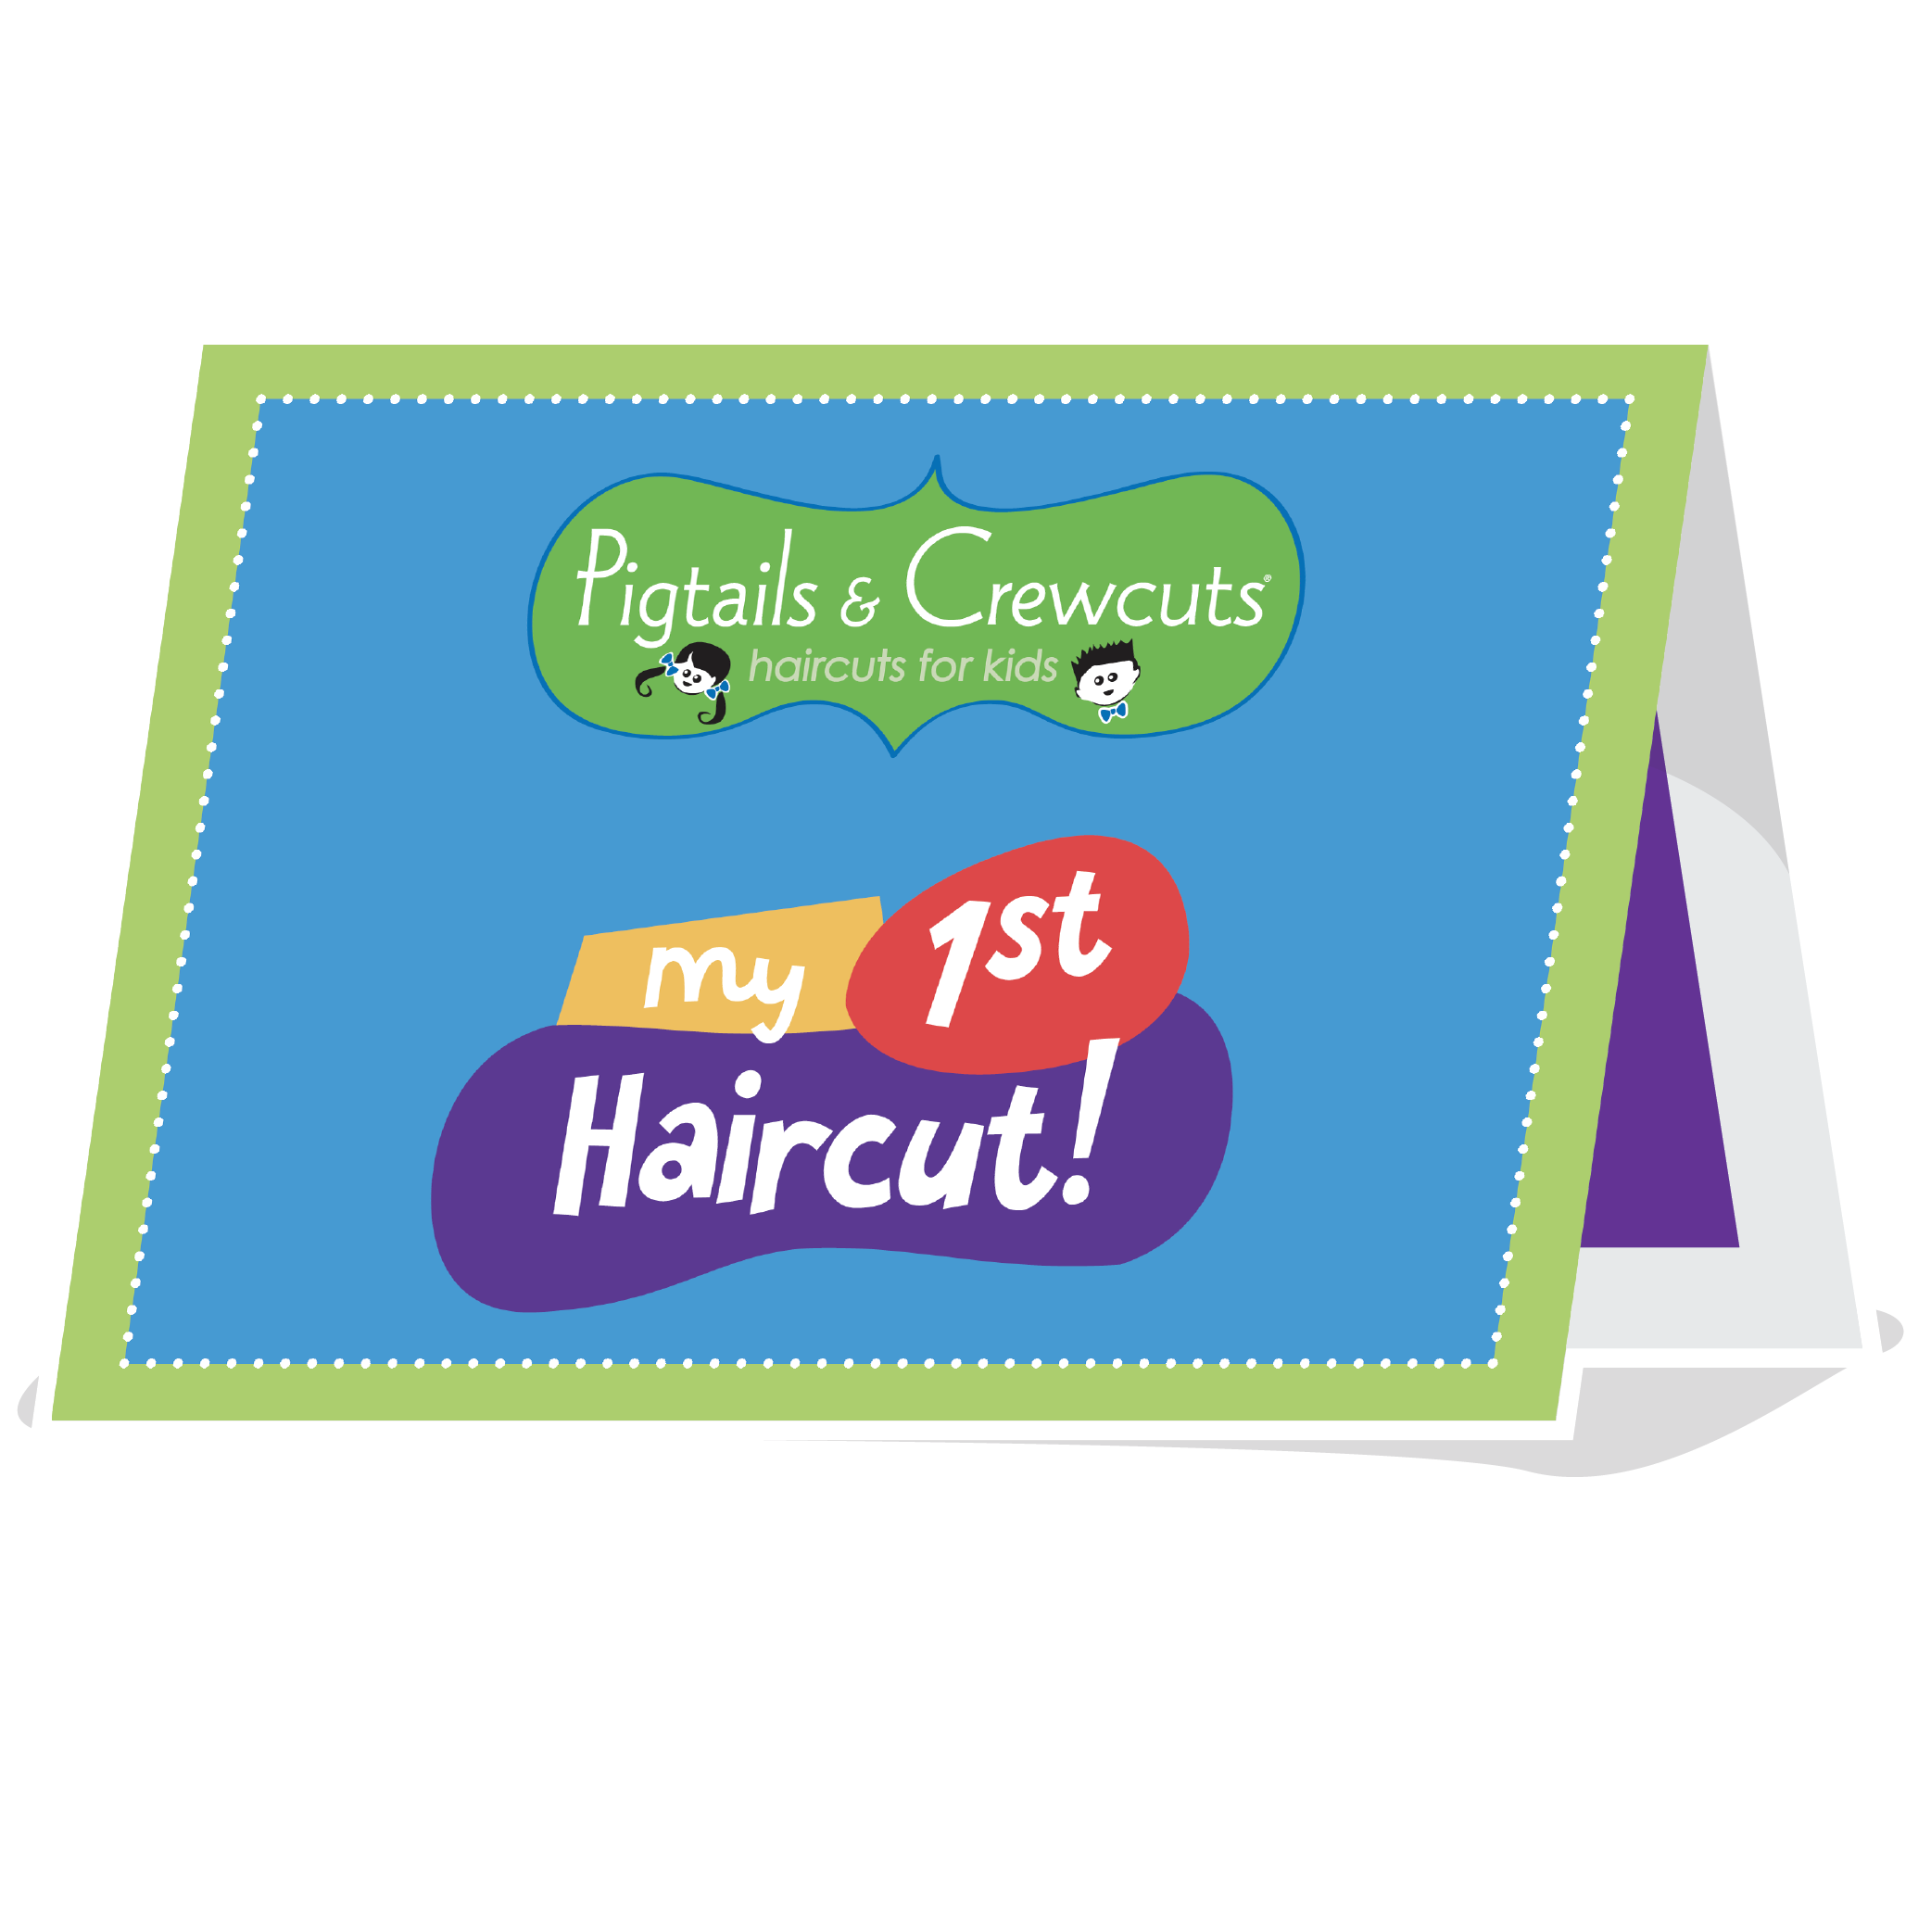 Haircut services - 1st Haircut Tent Card